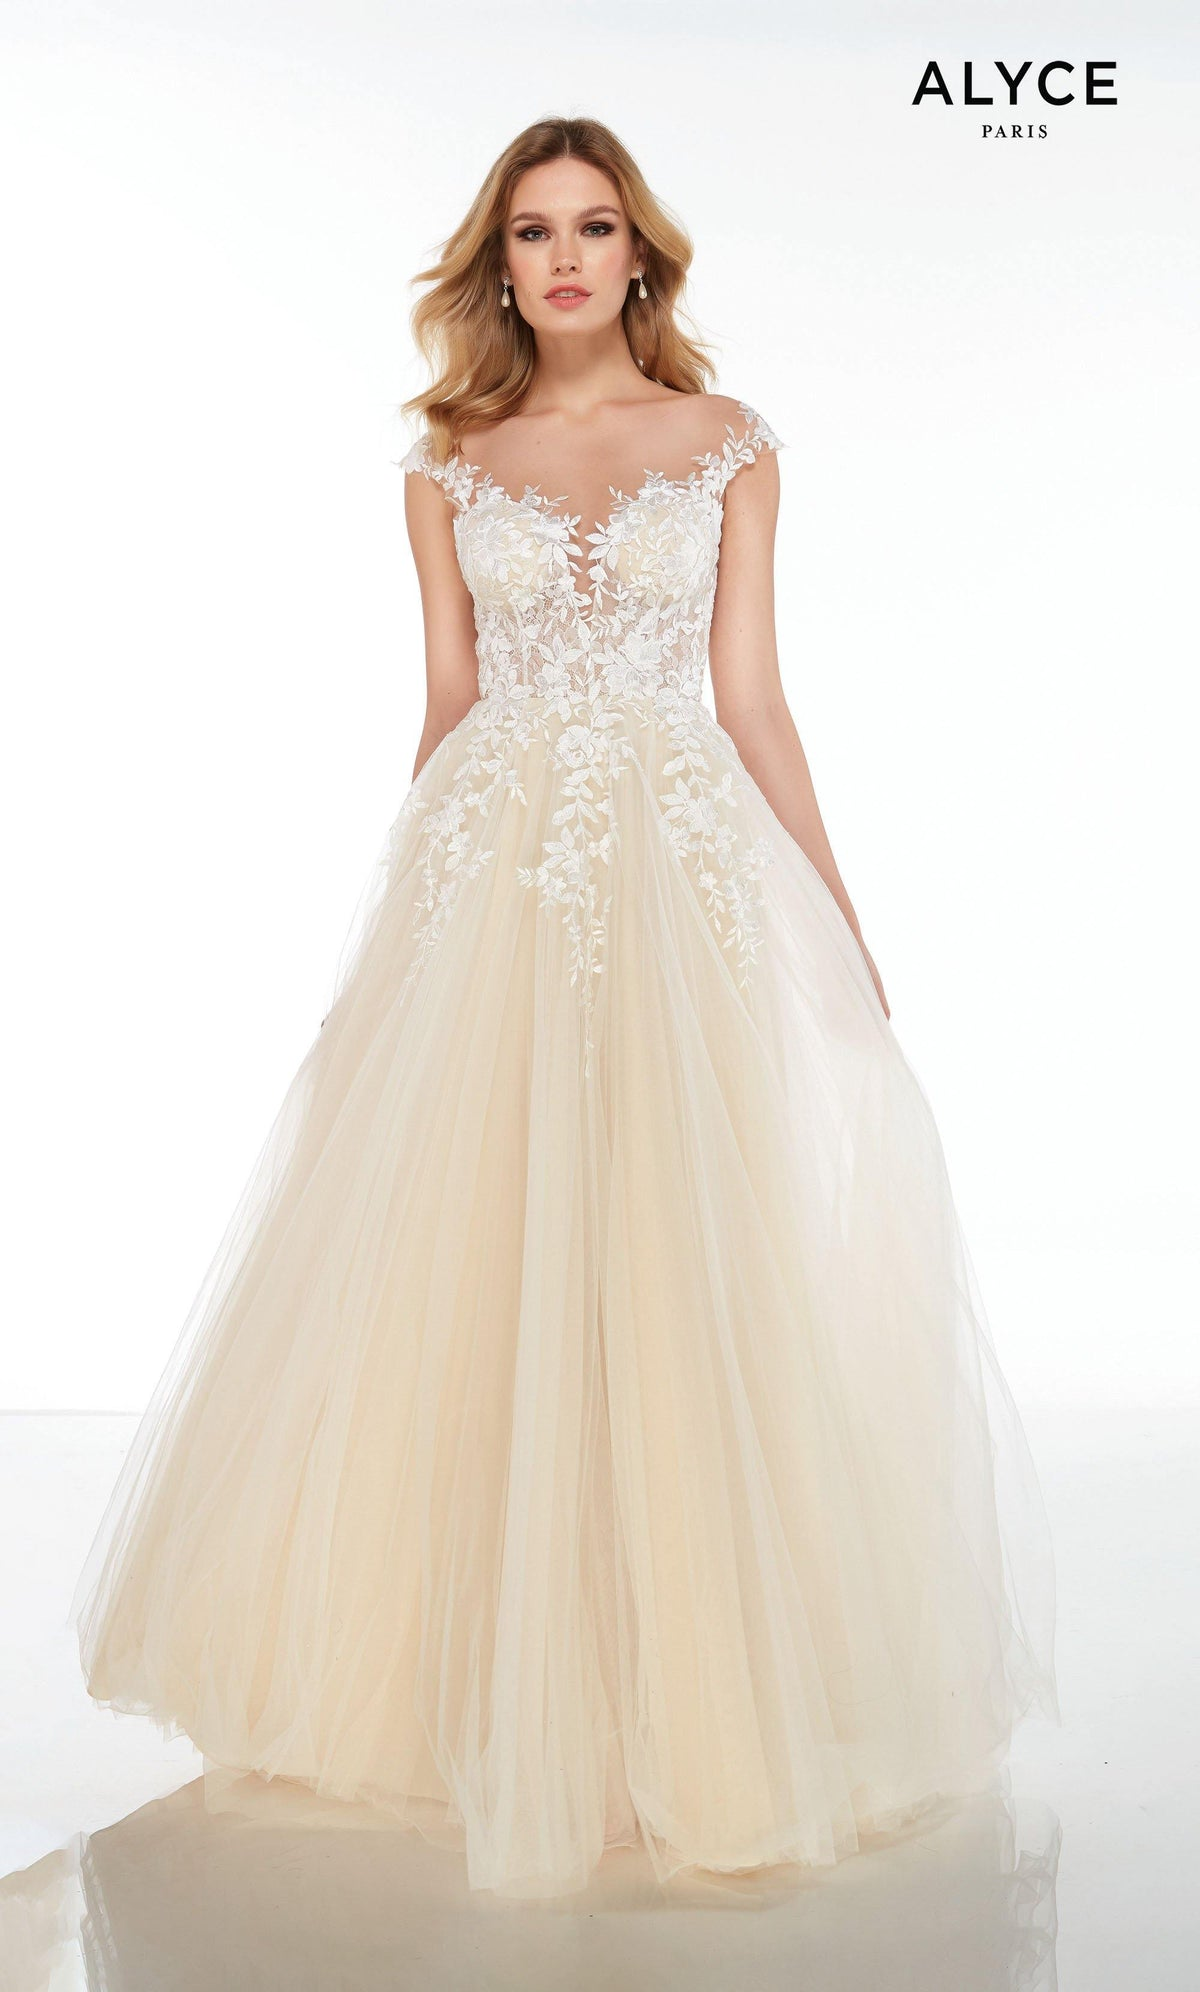 Off the shoulder Ivory-Champagne tulle-lace informal wedding dress with a plunging neckline and a sheer bodice